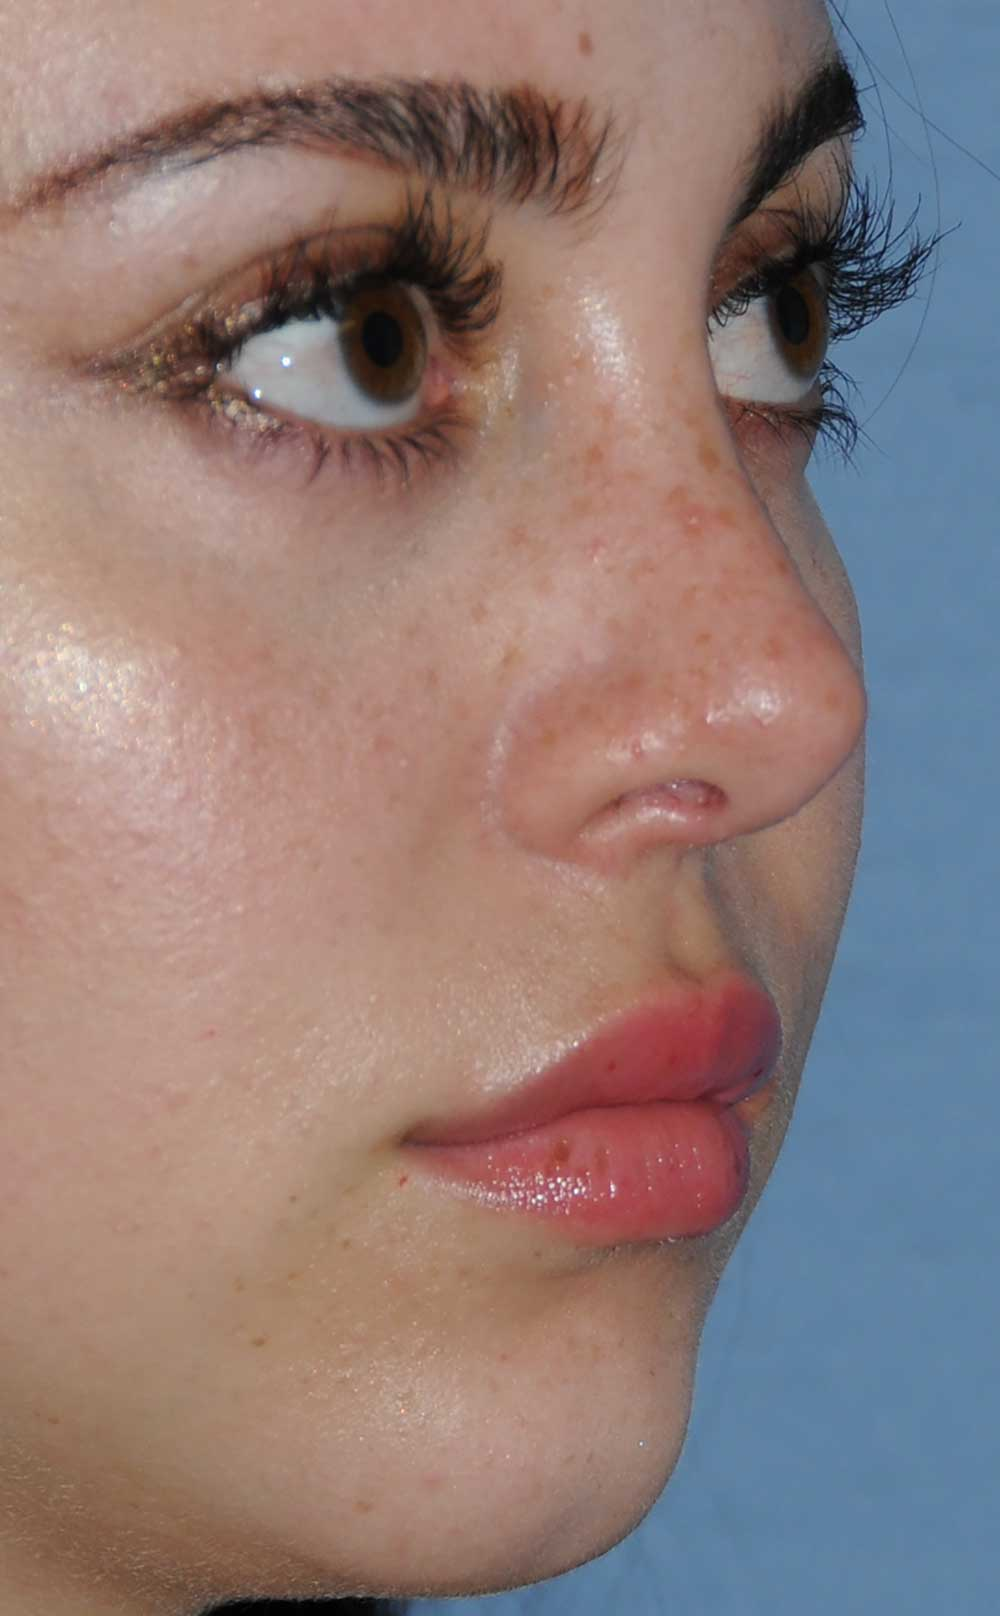 Rhinoplasty for a Bulbous Nasal Tip, Prominent Nasal Bridge, Short Nose / Columella and Lip Fat Transfer for Small Thin Lateral Upper Outer Lips After Right Oblique View